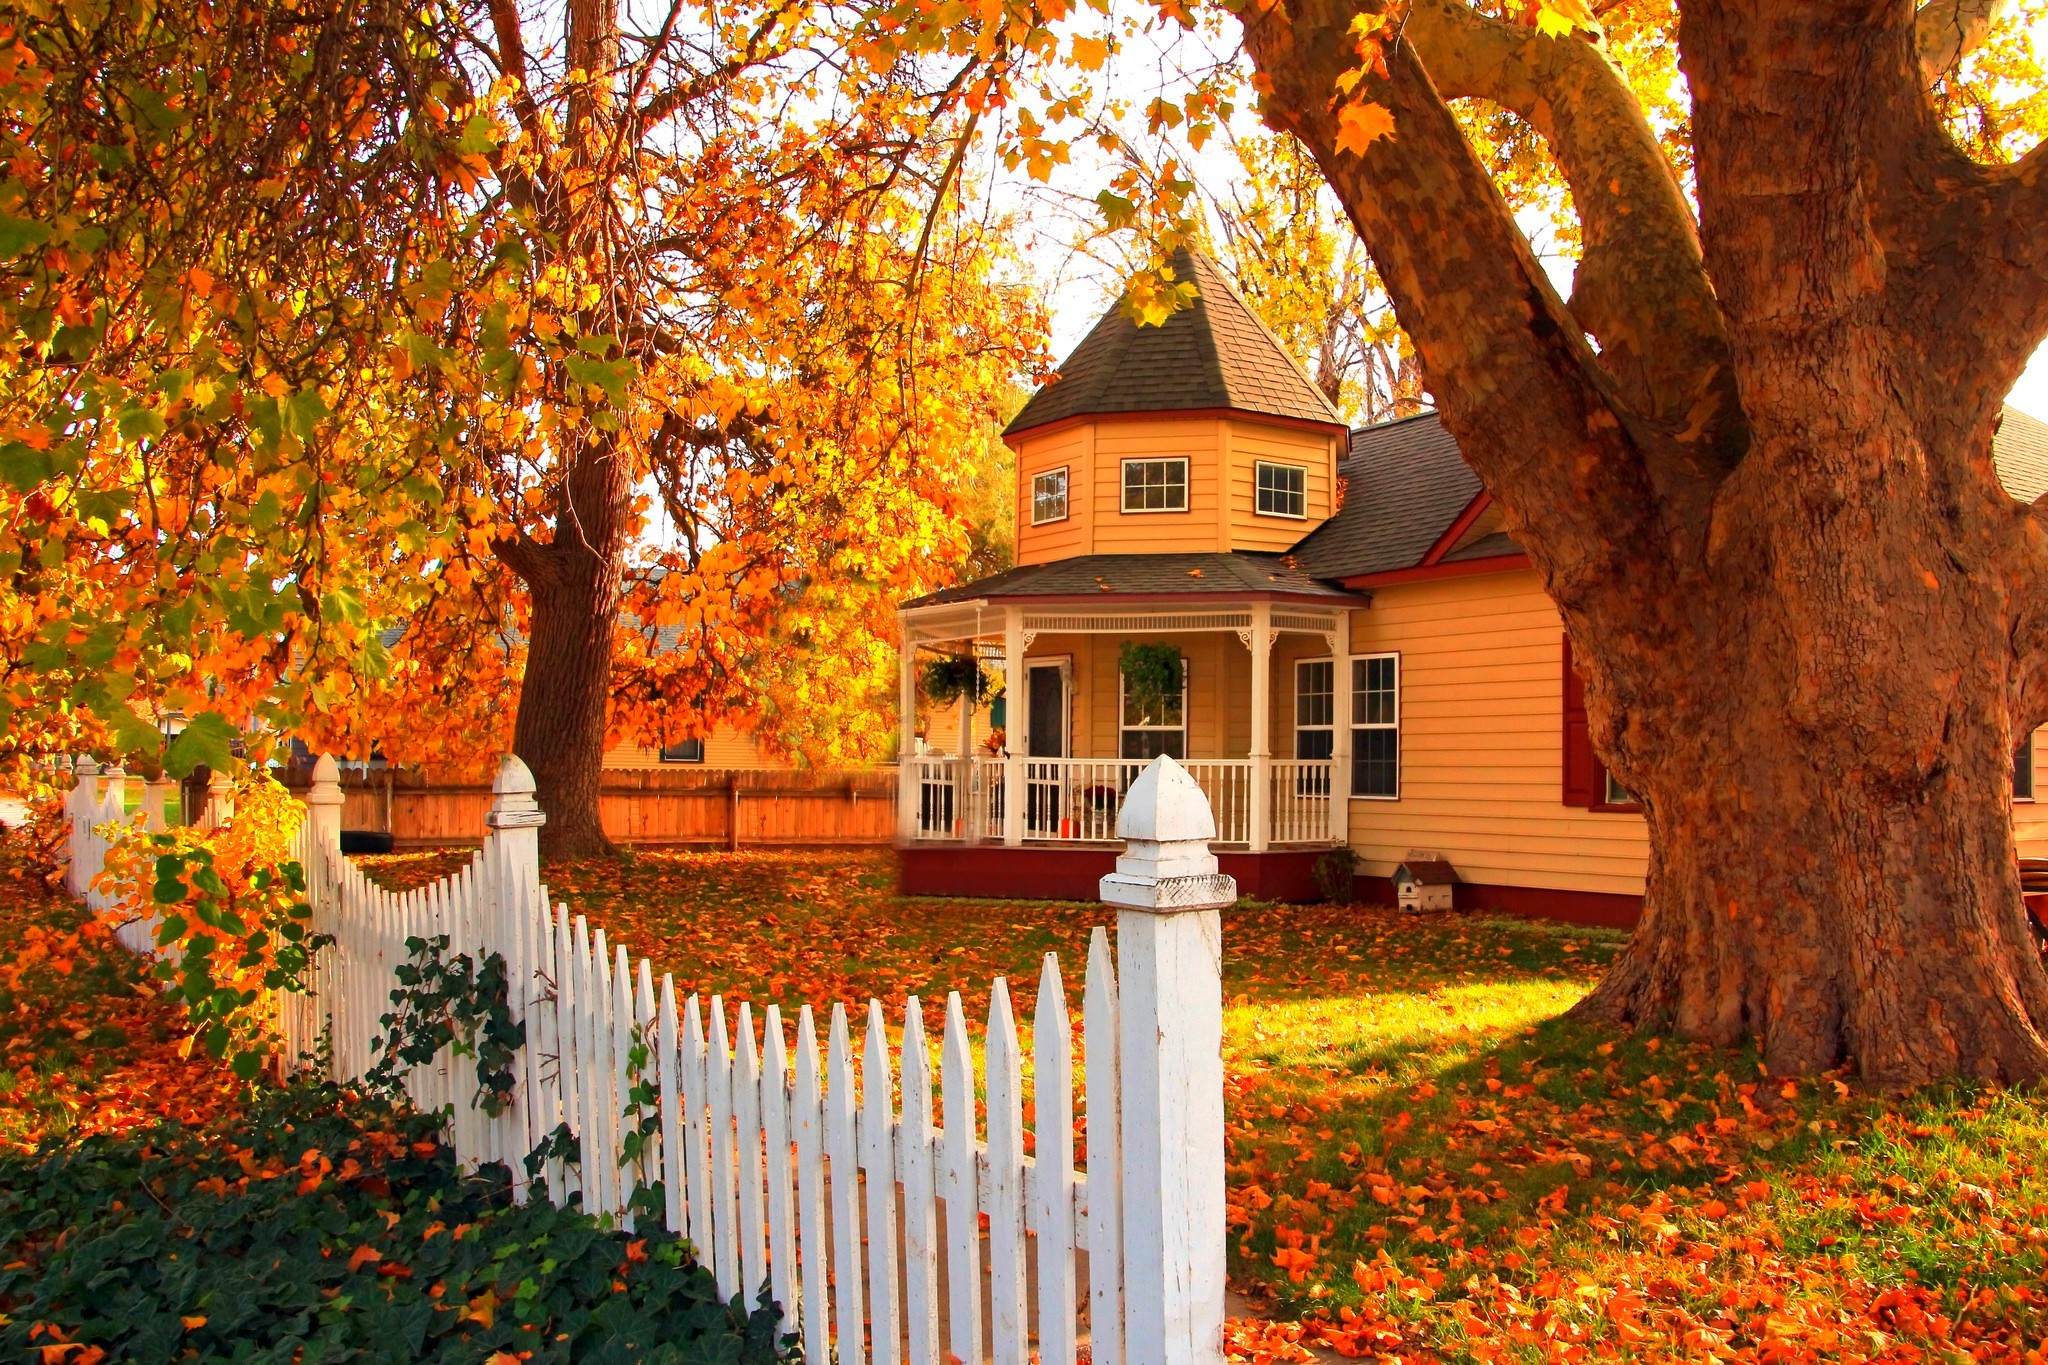 Pretty House In Autumn Full HD Wallpaper And Background Image